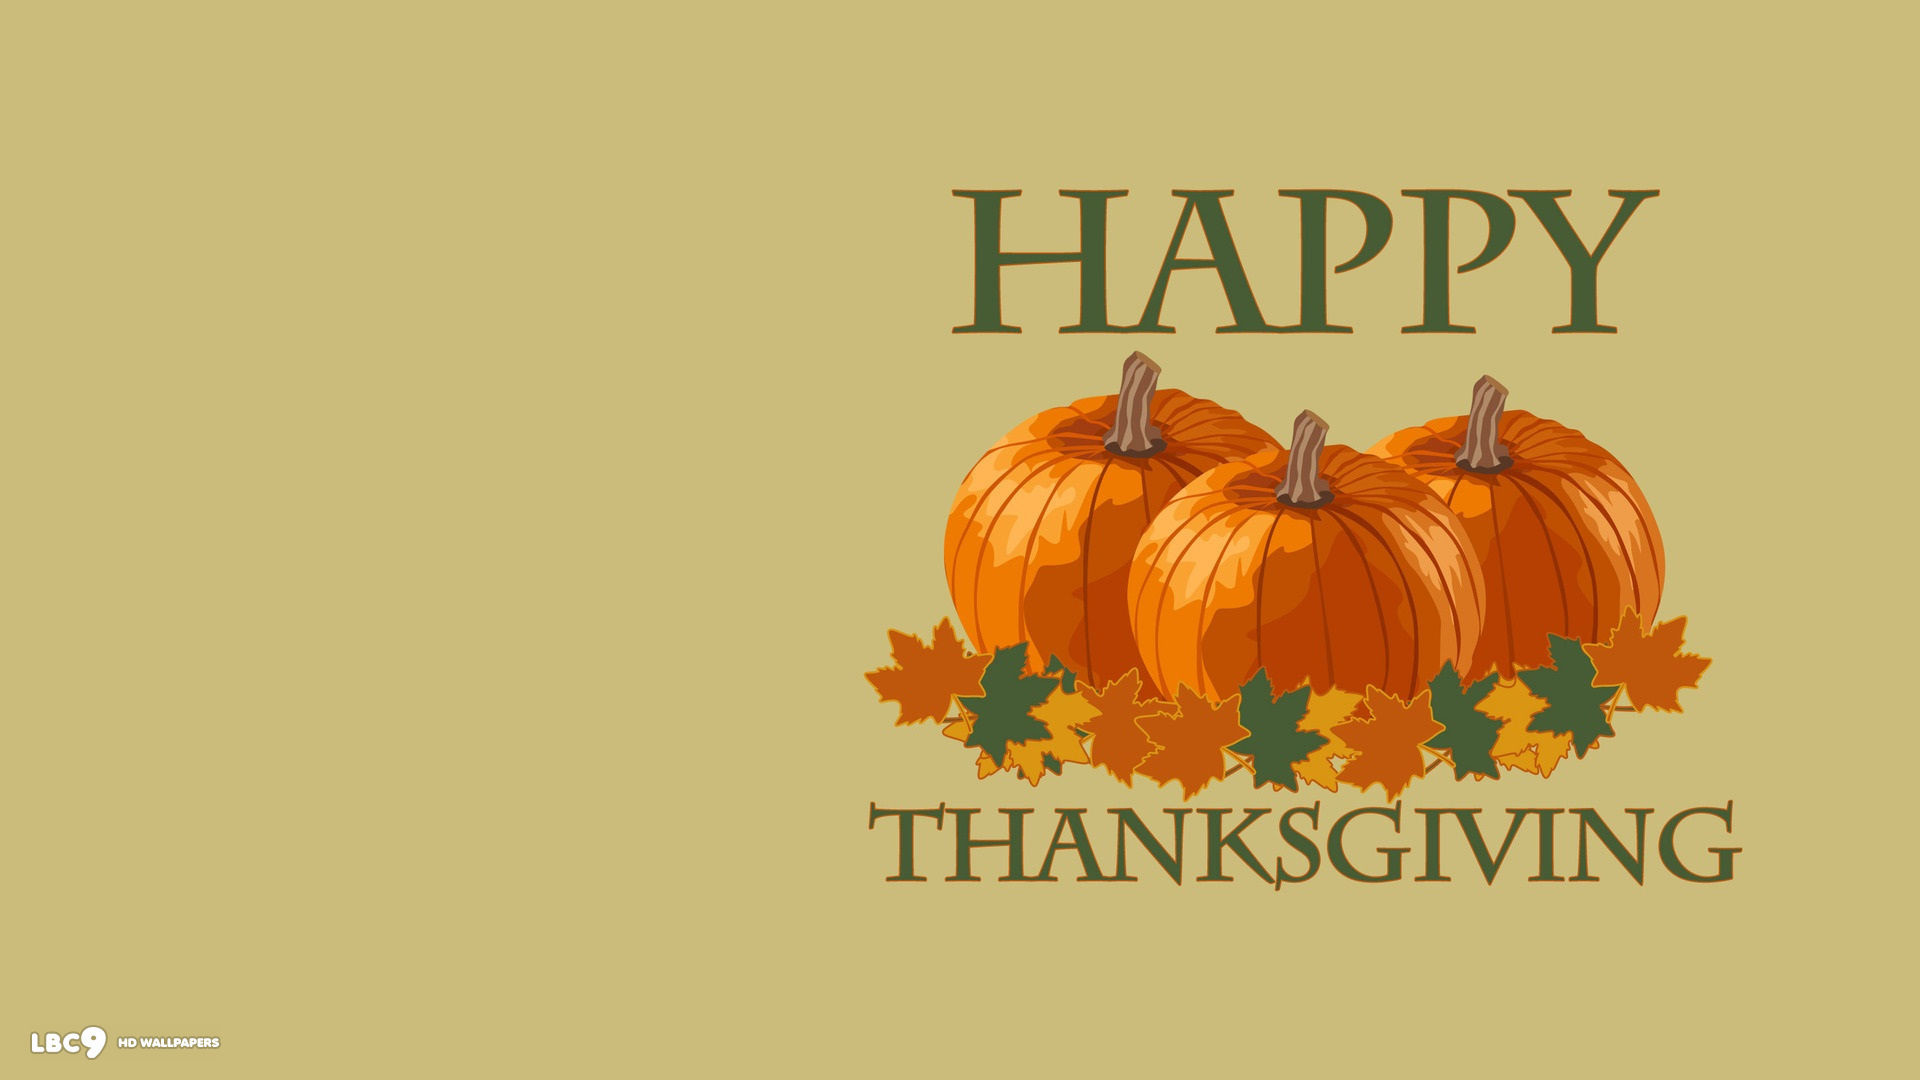 1920x1080 happy thanksgiving three pumpkins simple holiday desktop background